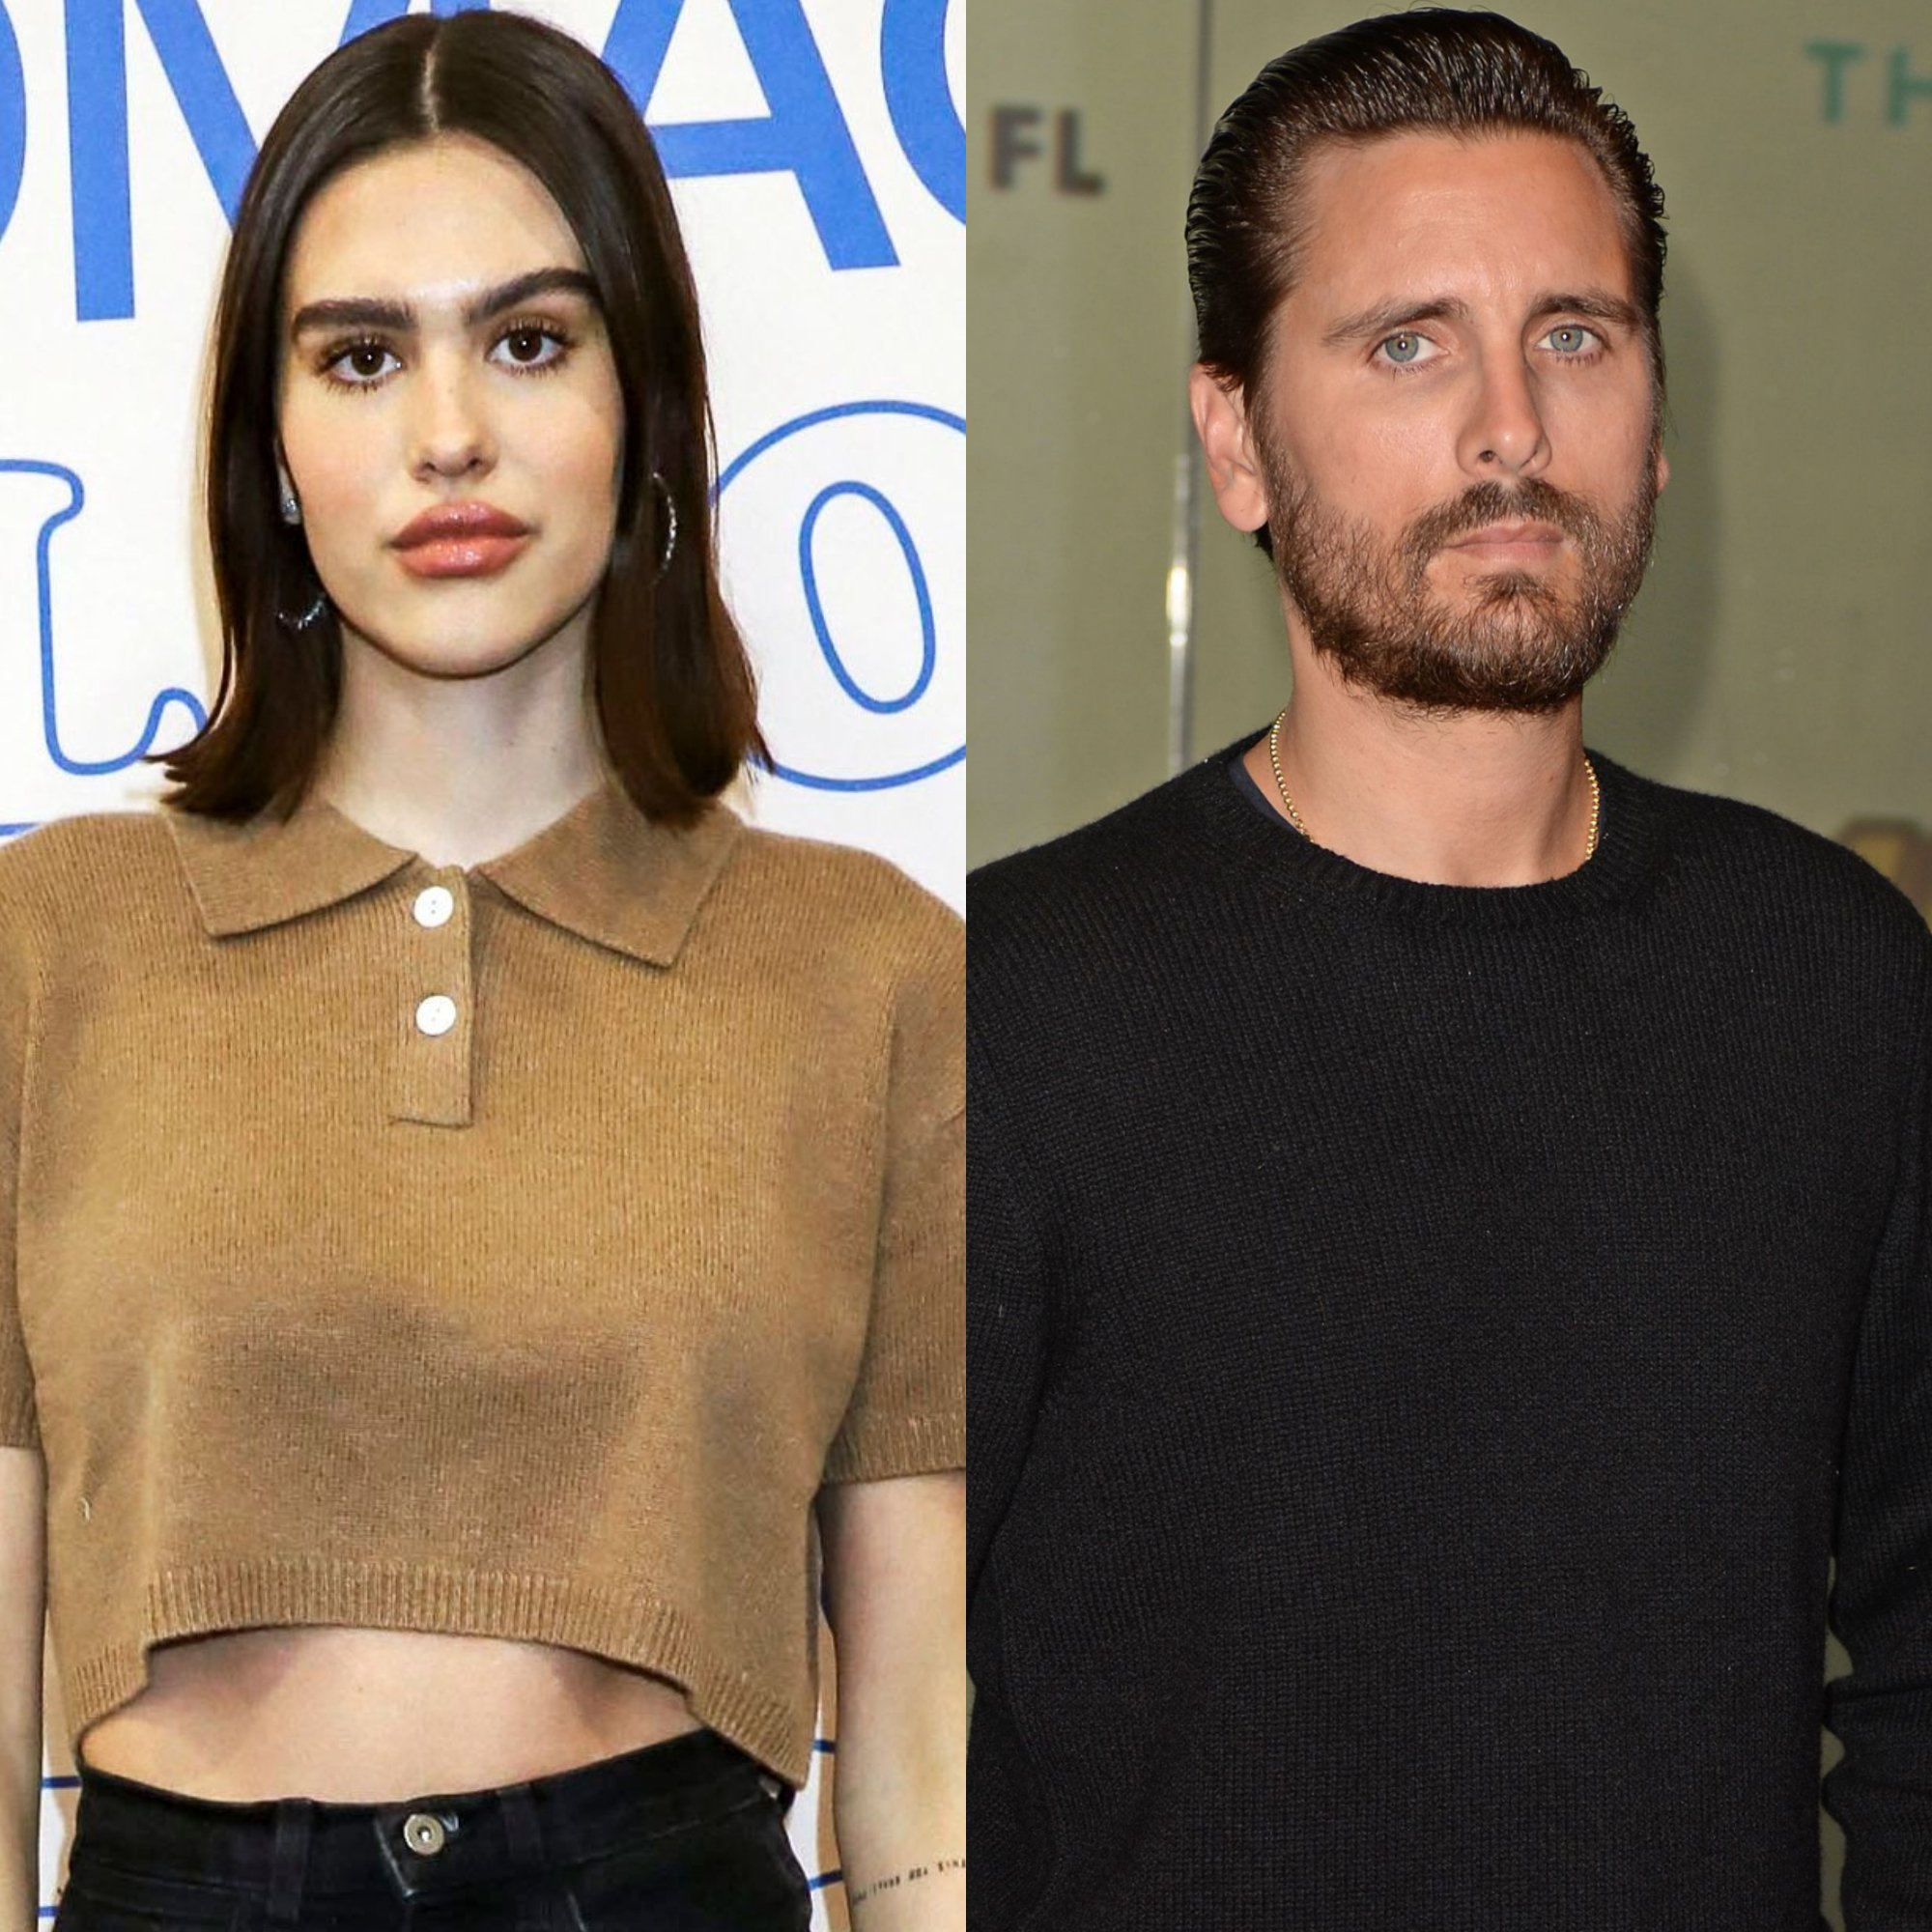 scott-disick-and-amelia-hamlin-inside-their-relationship-status-at-this-point-how-serious-is-it